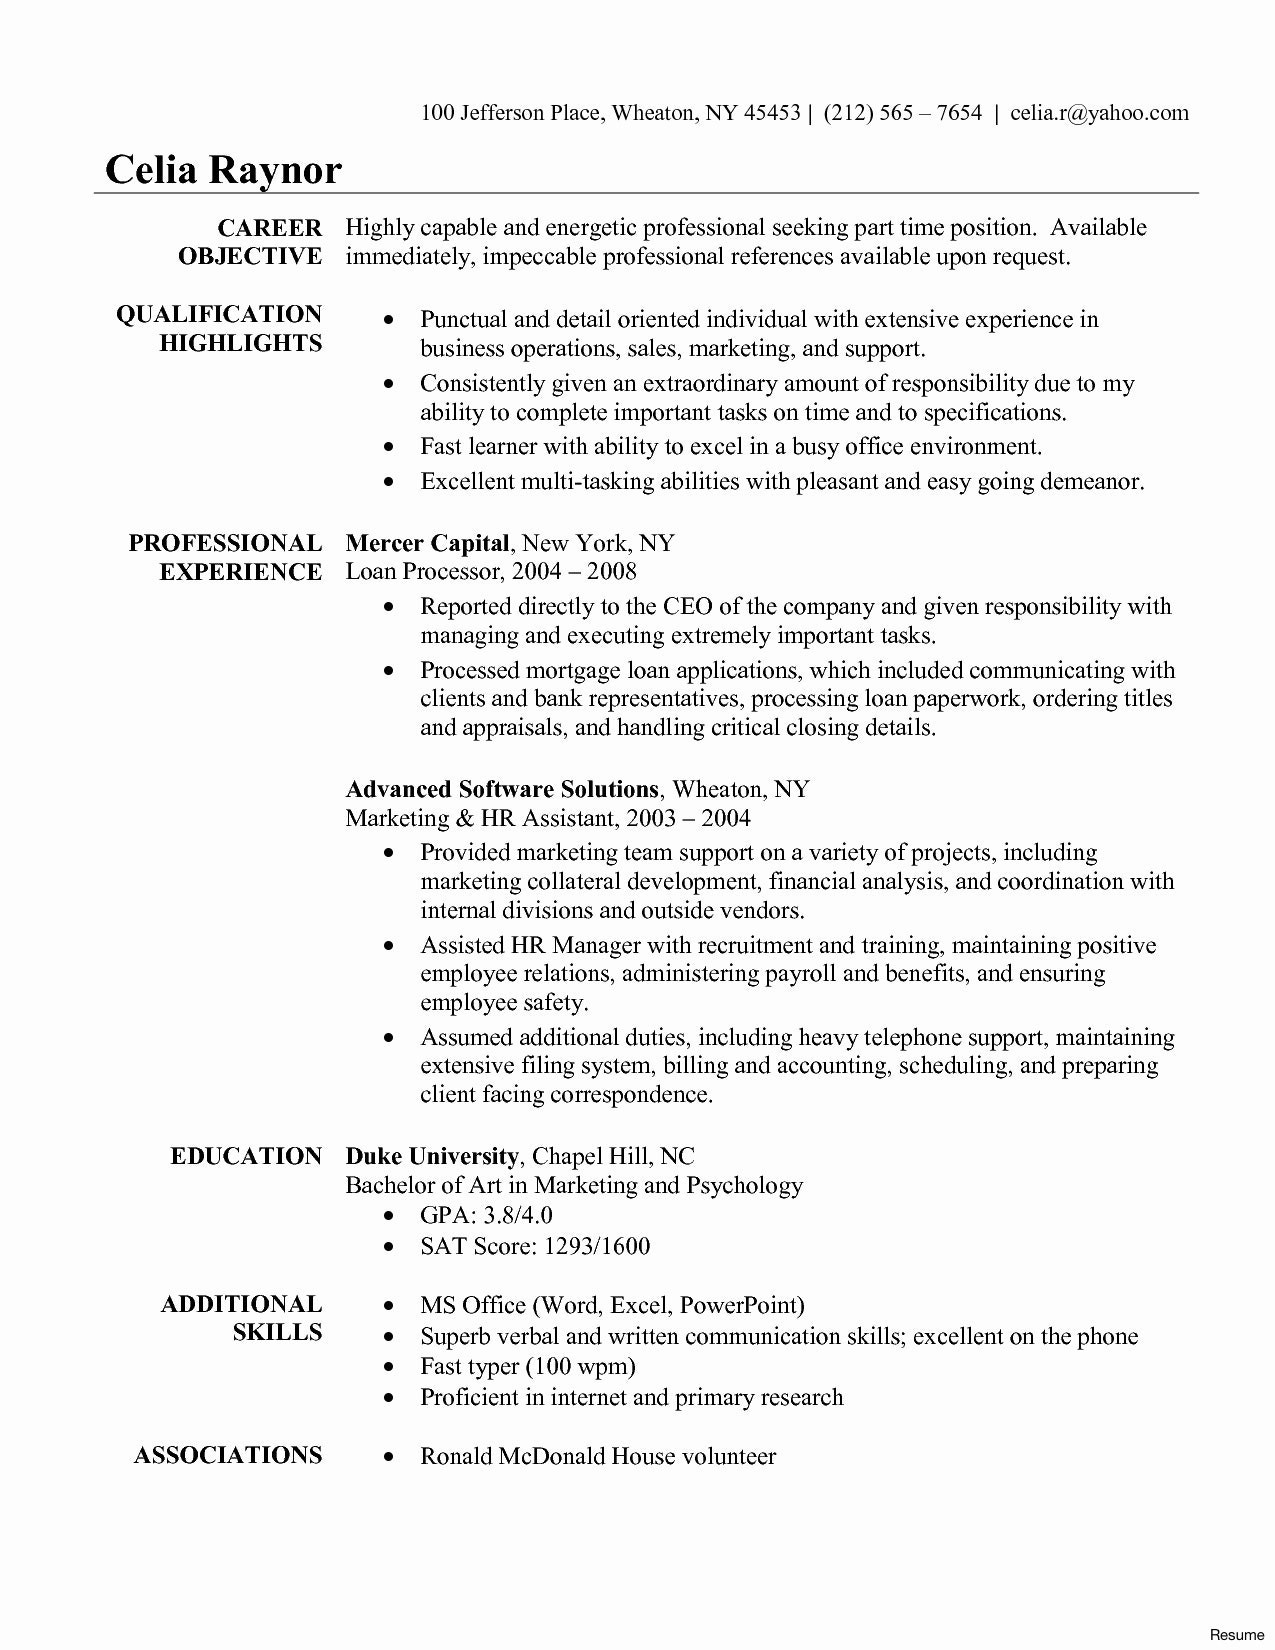 law student resume template example-Individual Development Unique Law Student Resume Template Best Resume Examples 0d 7-s